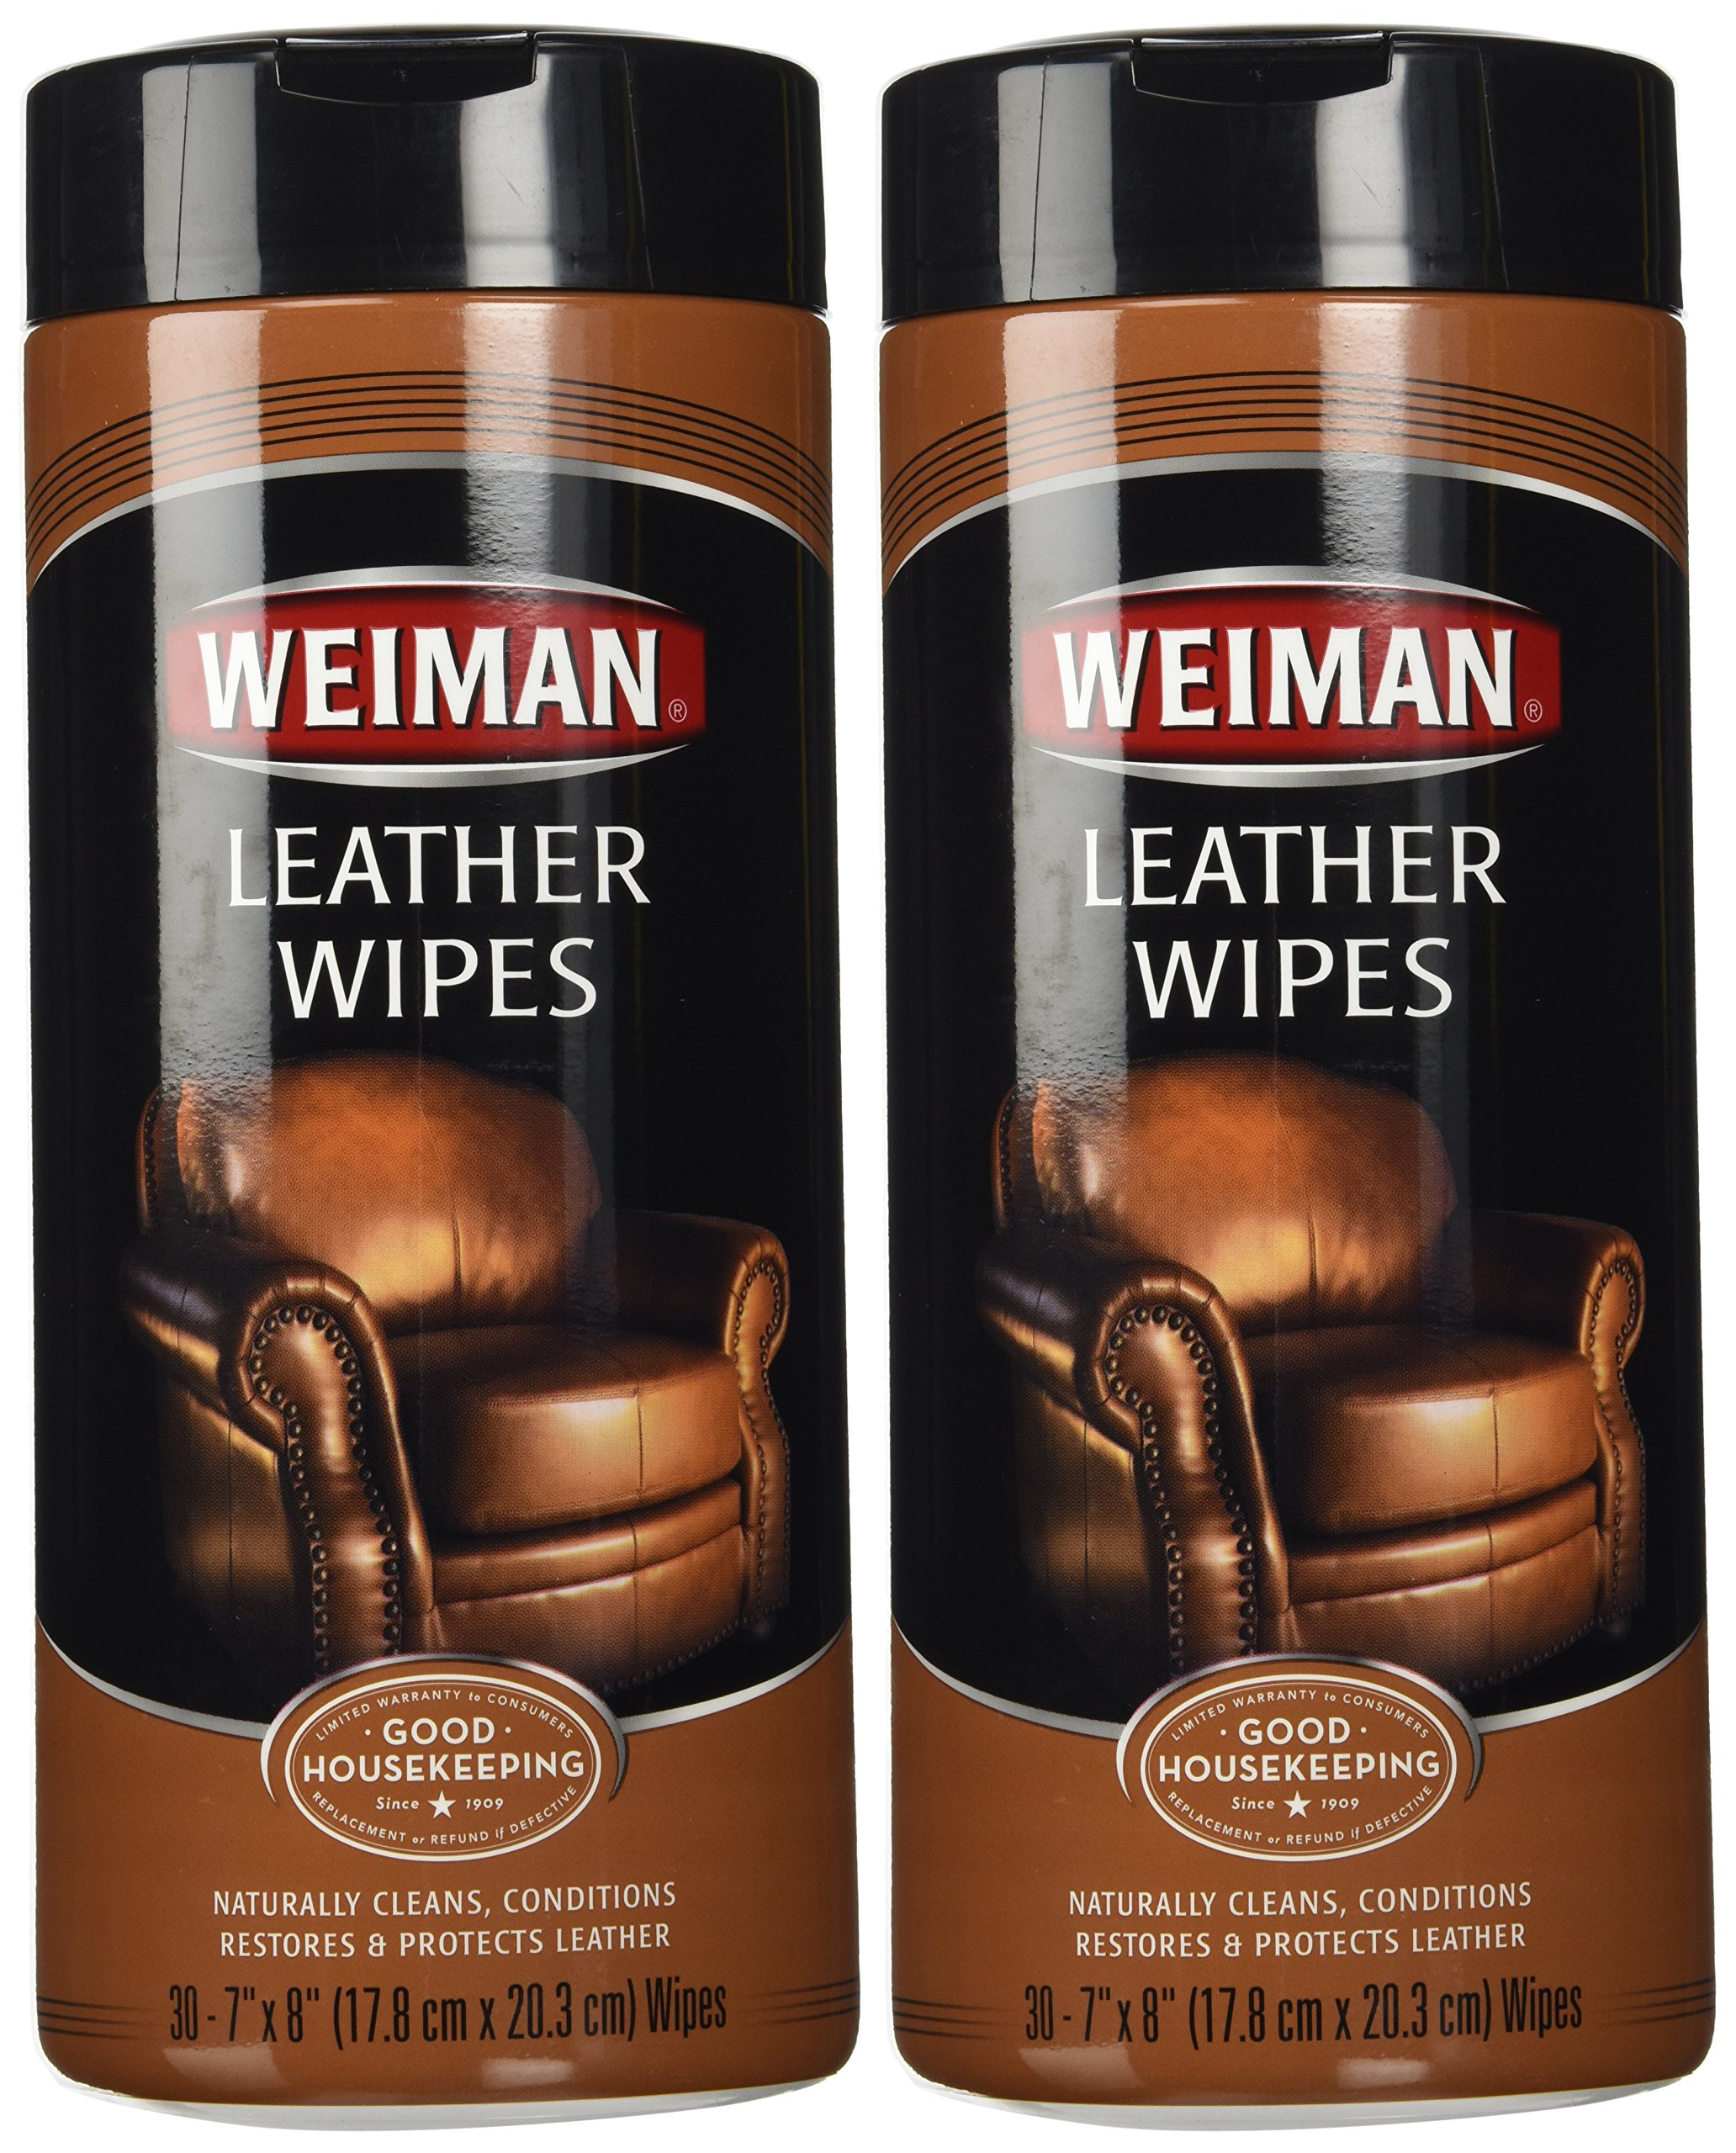 weiman leather wipes were designed to clean condition and protect leather the natural cleaners. Black Bedroom Furniture Sets. Home Design Ideas